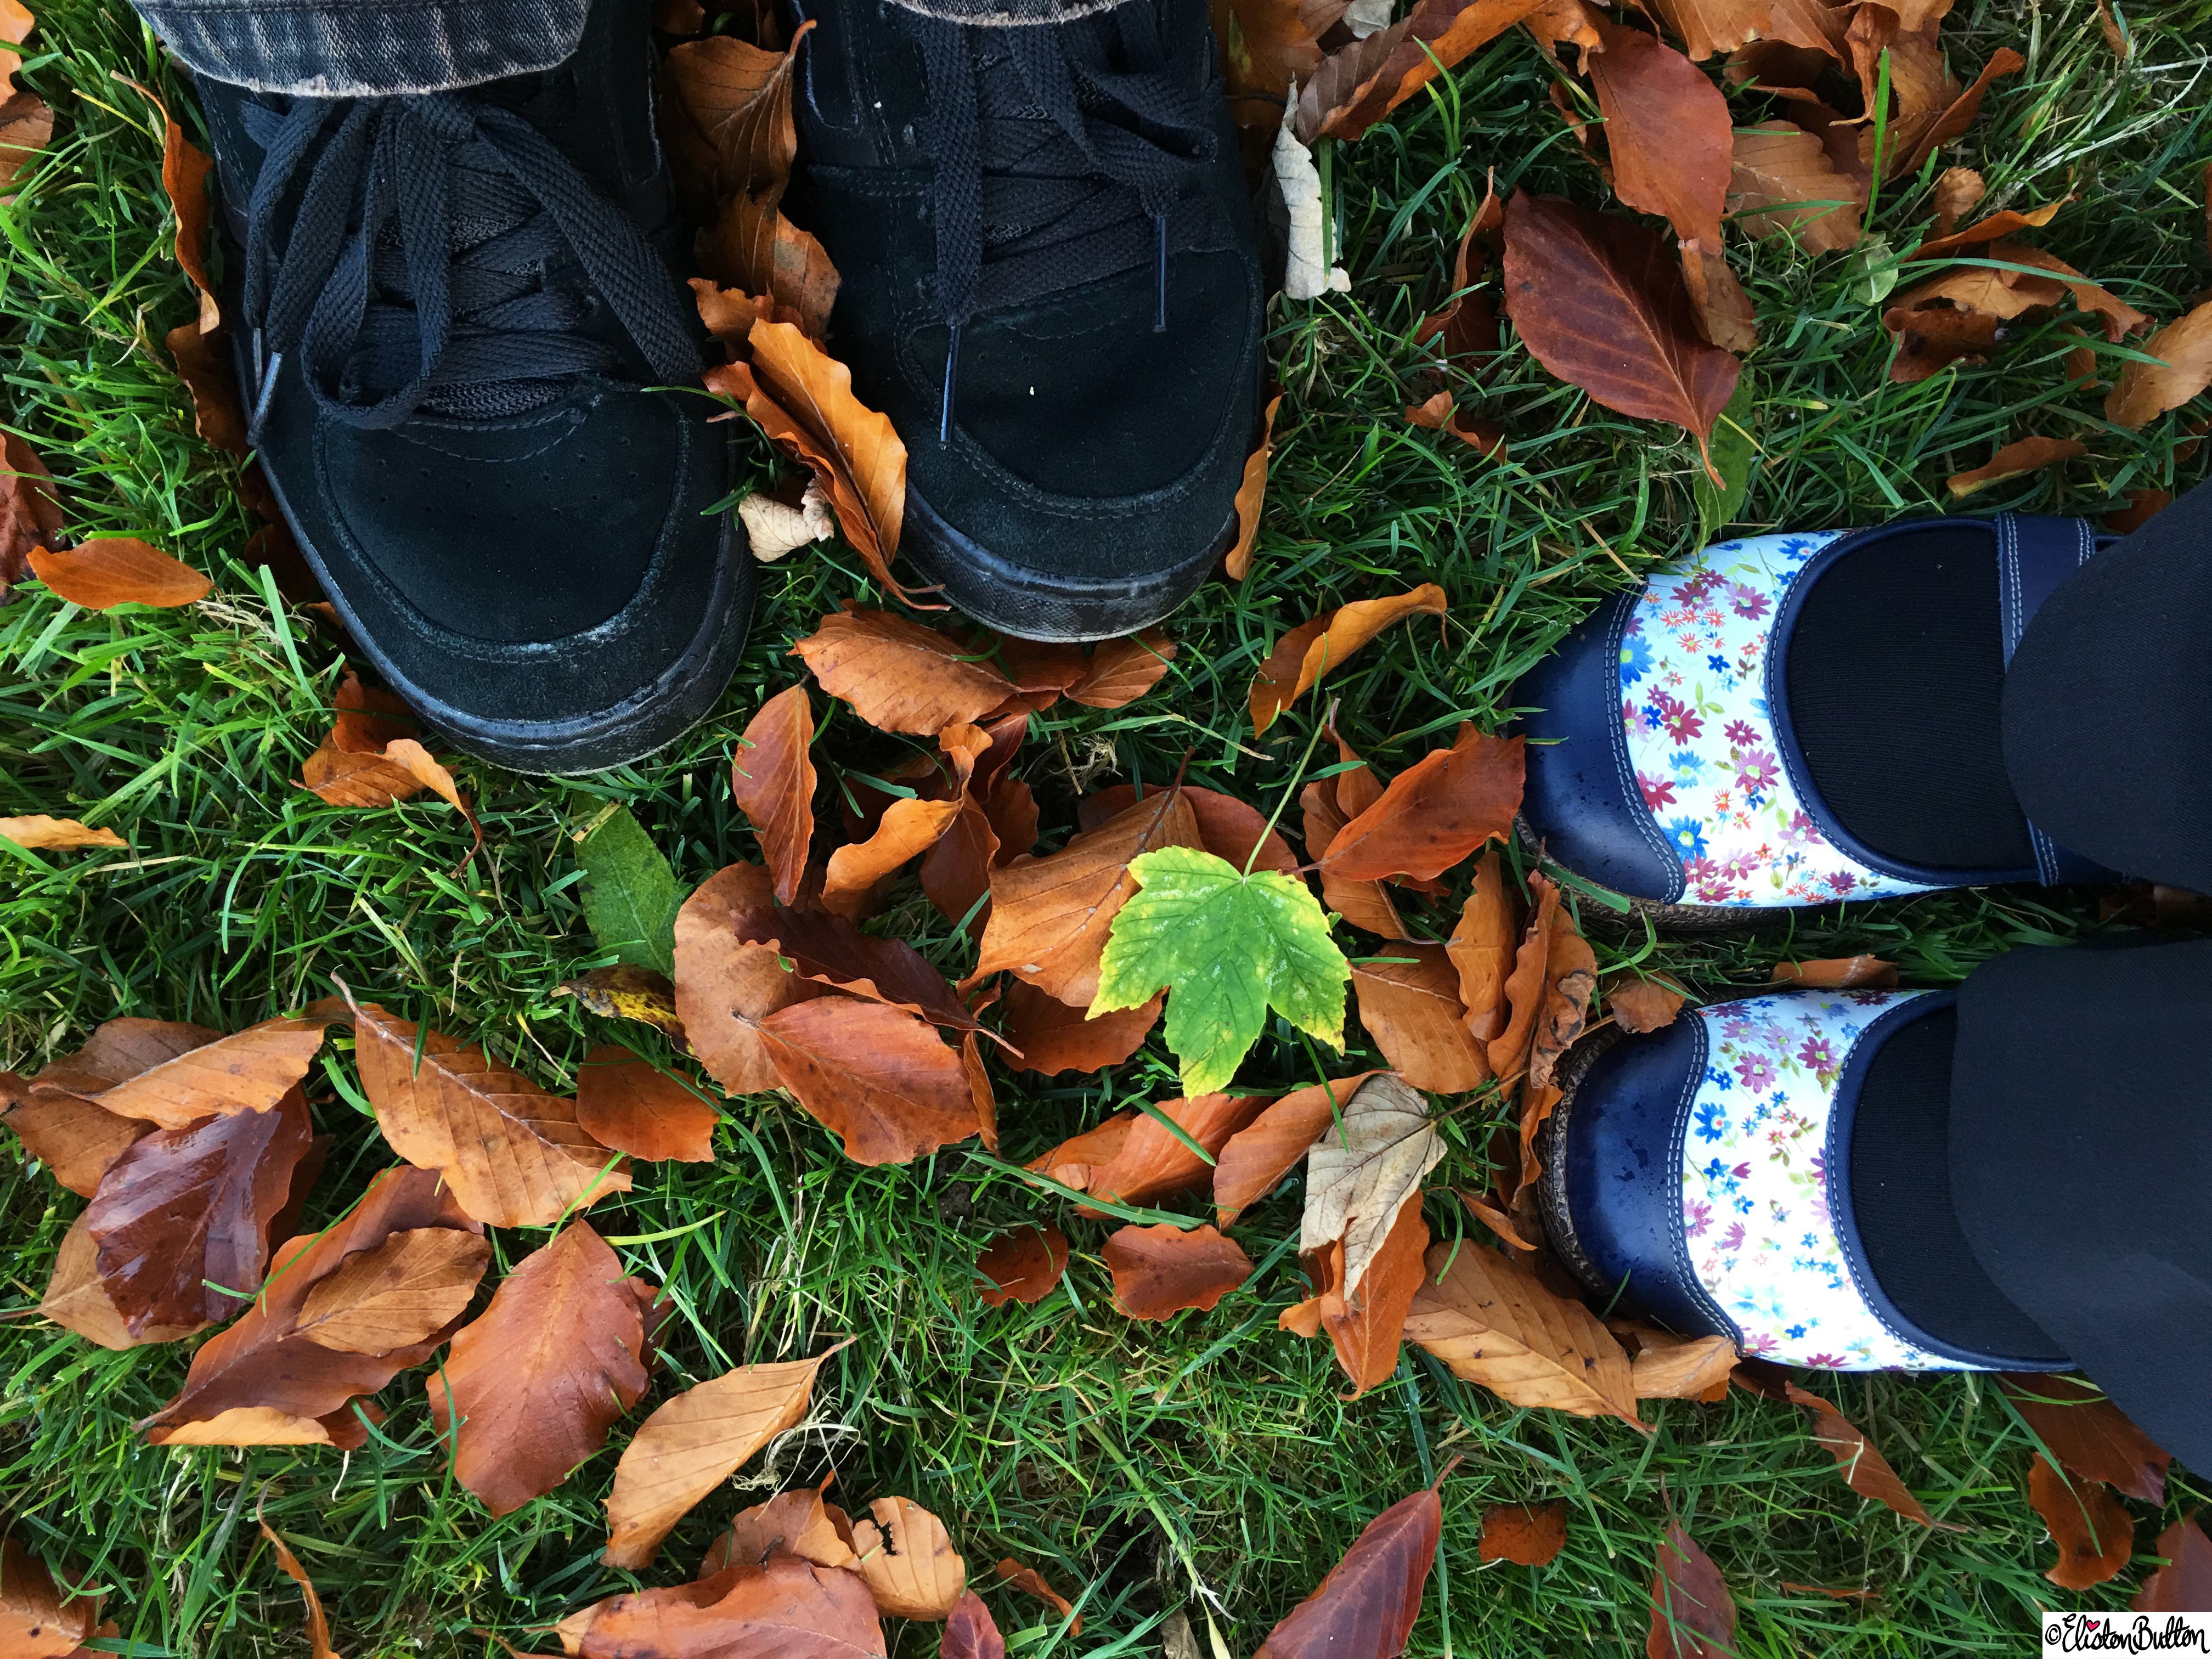 Feet together in the Autumn Leaves  at Dovers Hill, Cotswolds, UK - An Autumn Adventure at www.elistonbutton.com - Eliston Button - That Crafty Kid – Art, Design, Craft & Adventure.